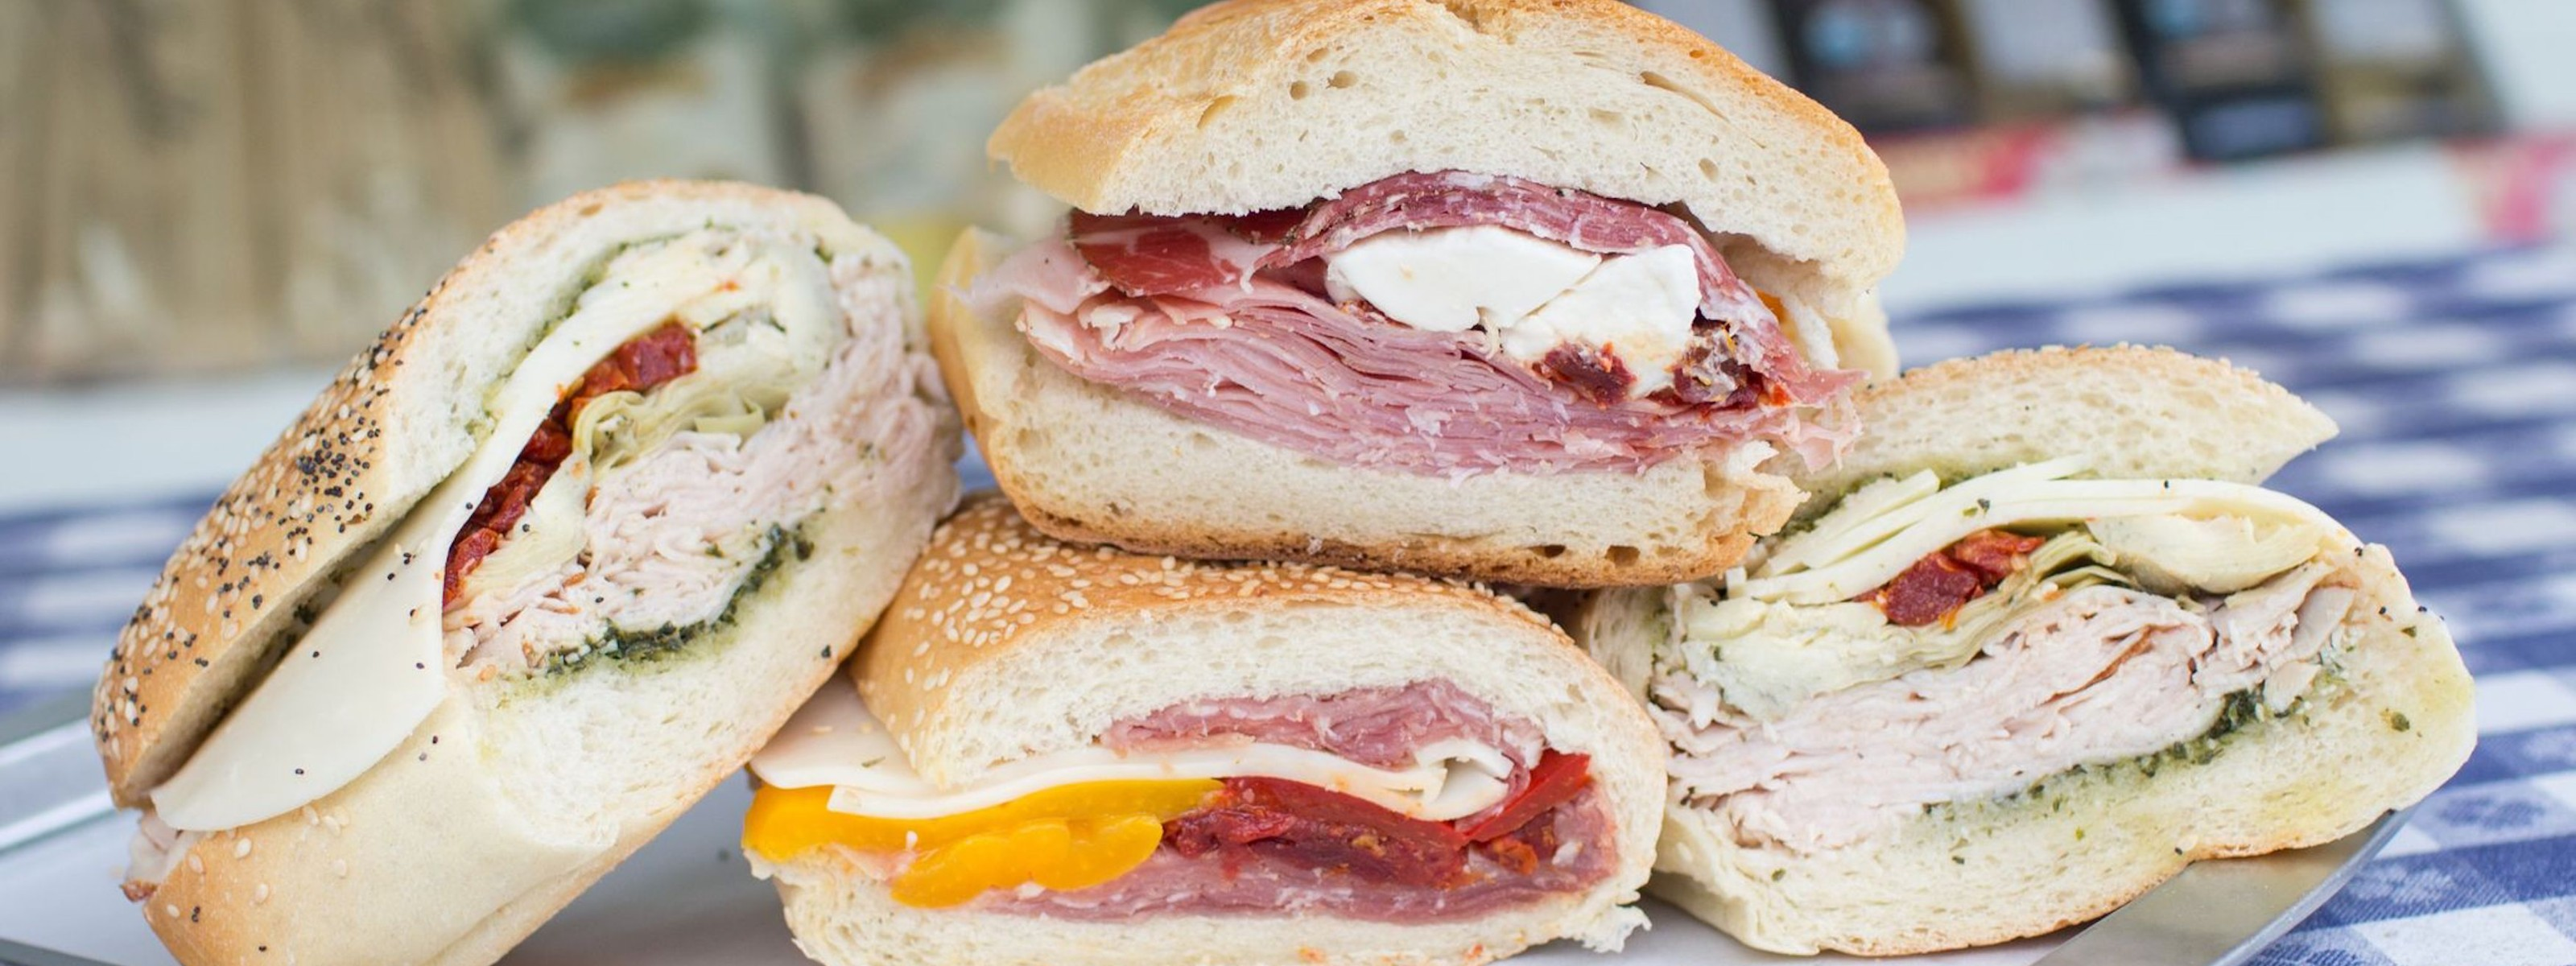 13 Great Places In SF To Pick Up Food For Your Picnic - San Francisco - The Infatuation